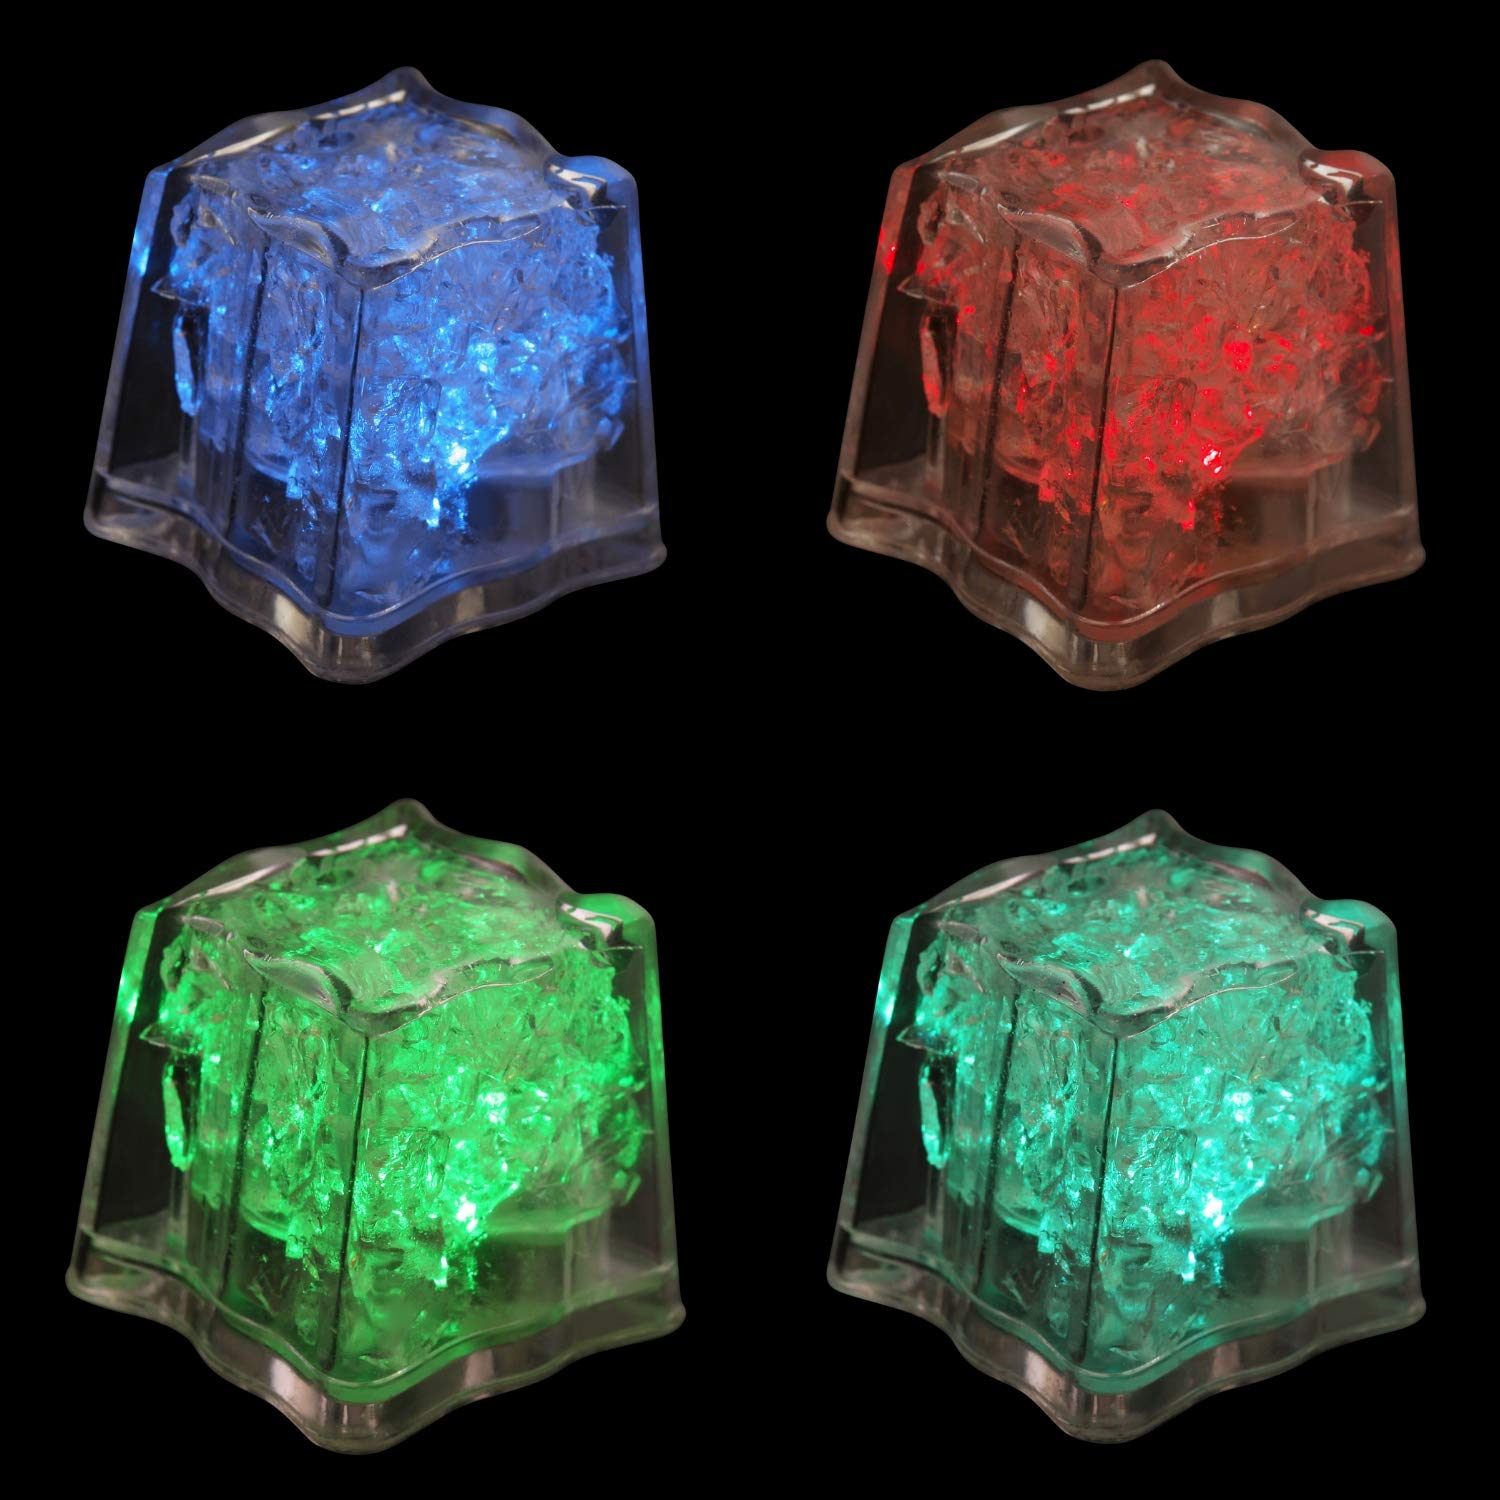 """Pubs CIL-CL-12PK 1/""""x1.3/"""" Plastic Flashing Switch Decorations for Drinks Novelty for Cocktails Lounges Glow in The Dark 12 Pack Parties Blinking Light Up Cube Houseables LED Ice Cubes Bars Multi Color"""